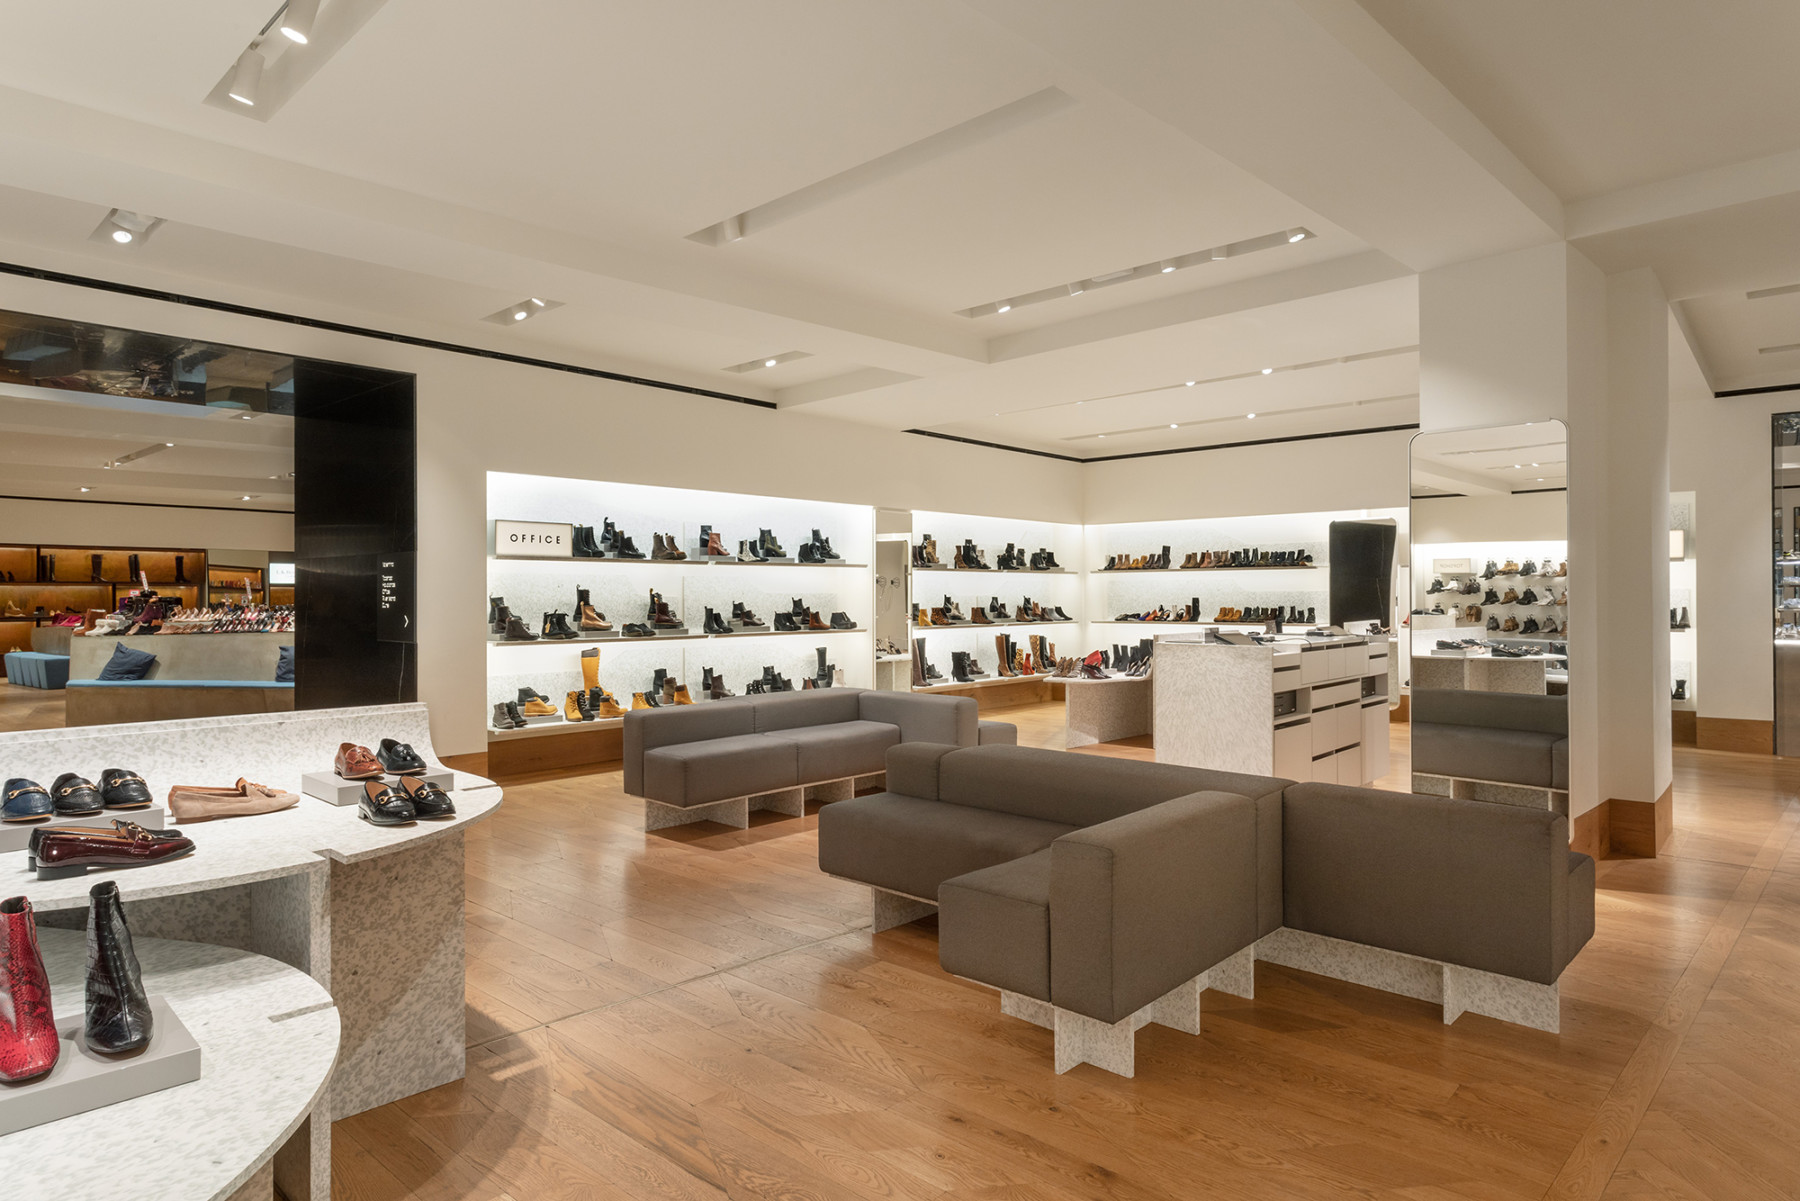 jamie-fobert-architects-selfridges-shoe-galleries-luxury-retail-concept-gallery-2-recycled